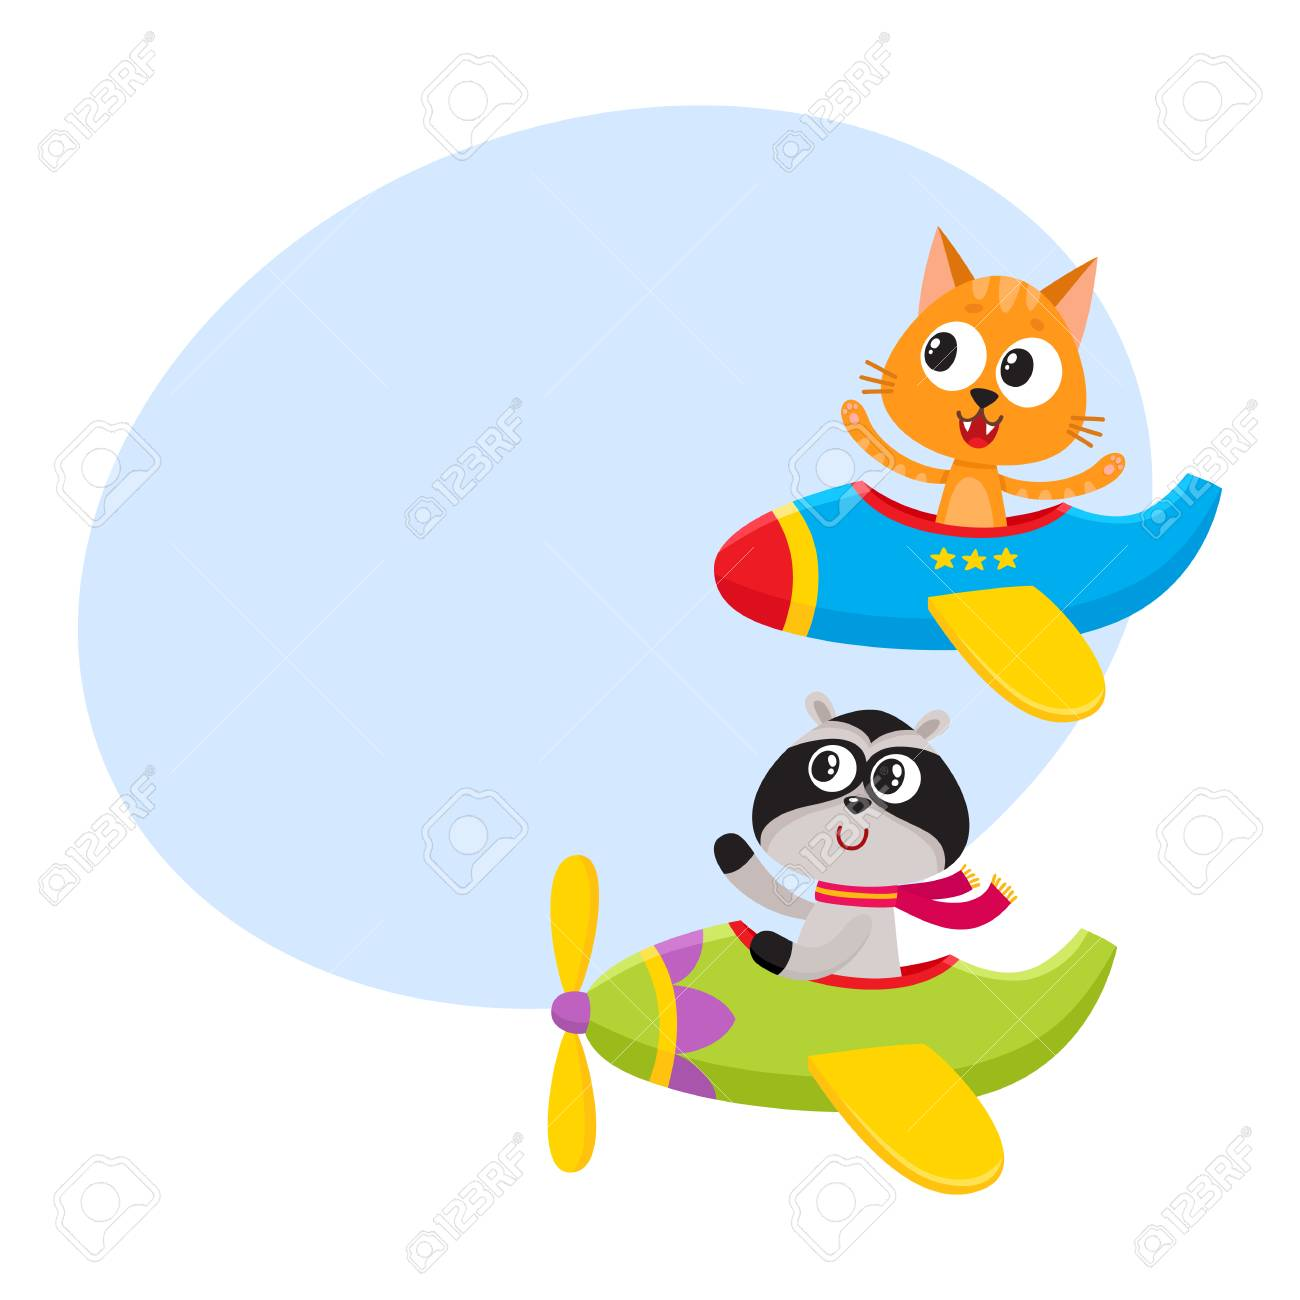 Cute Funny Animal Pilot Characters Flying On Airplane Cat And Royalty Free Cliparts Vectors And Stock Illustration Image 84777790